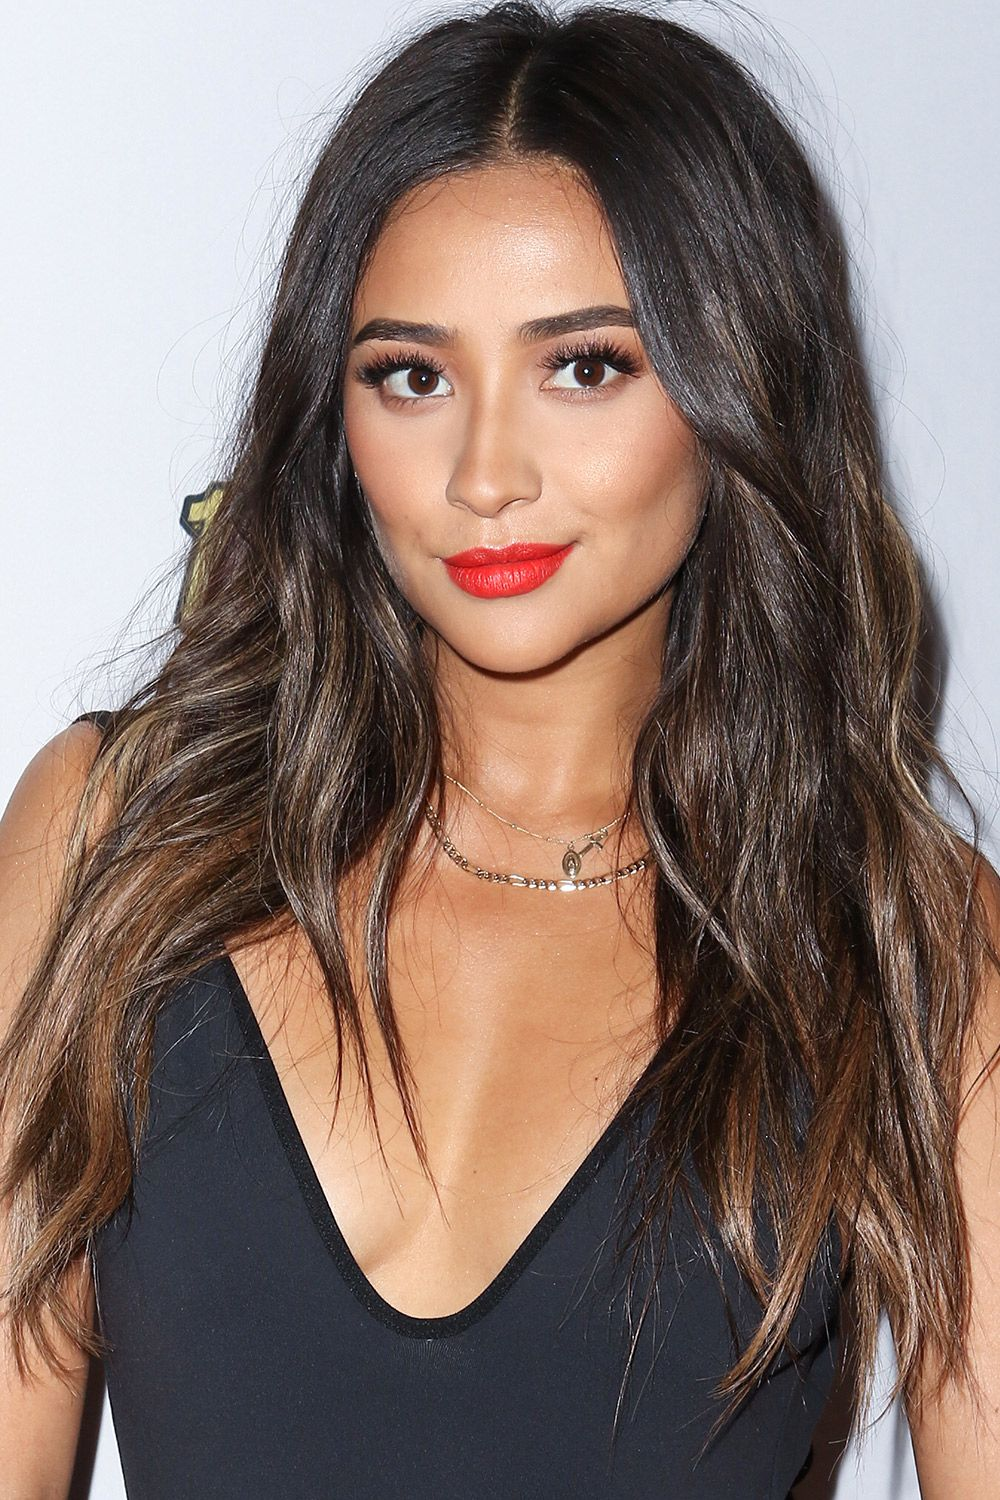 7 Celebs With Black Hair Highlights We Love Highlights For Black Hair